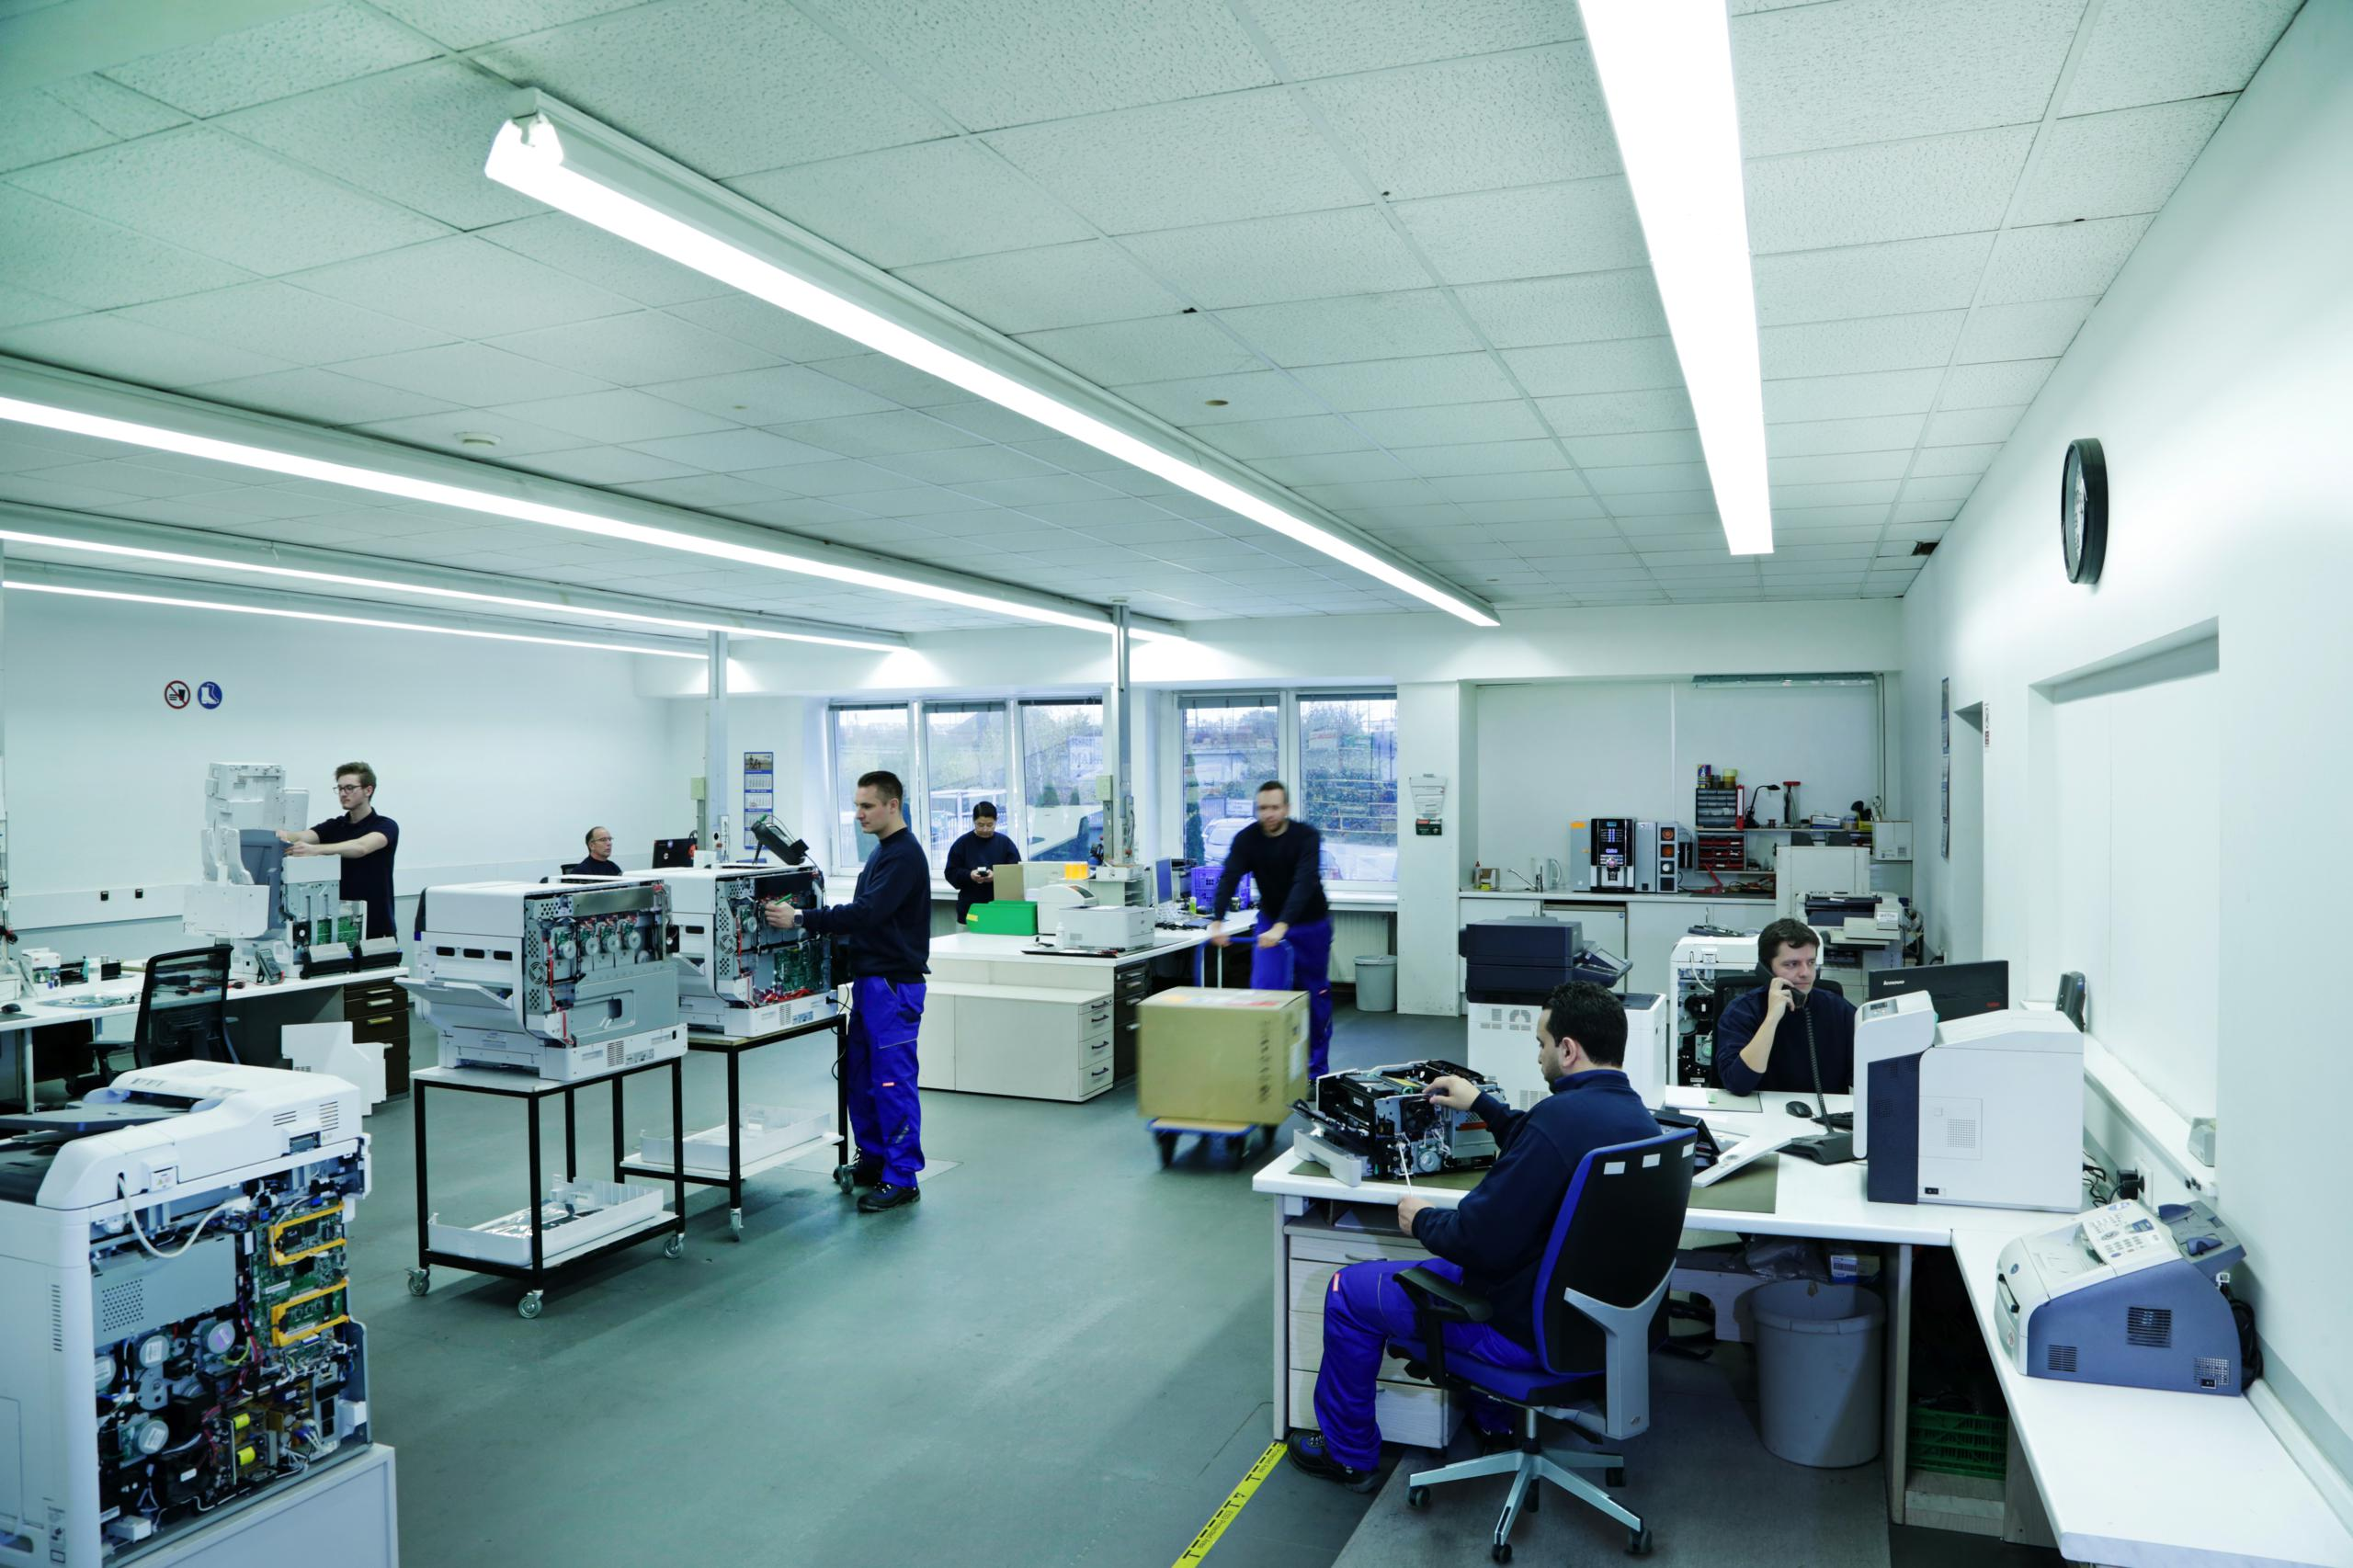 Repair Centre Lpr Gmbh Efficiently Connecting Logistics And Electronic Circuit Board Field Service Center